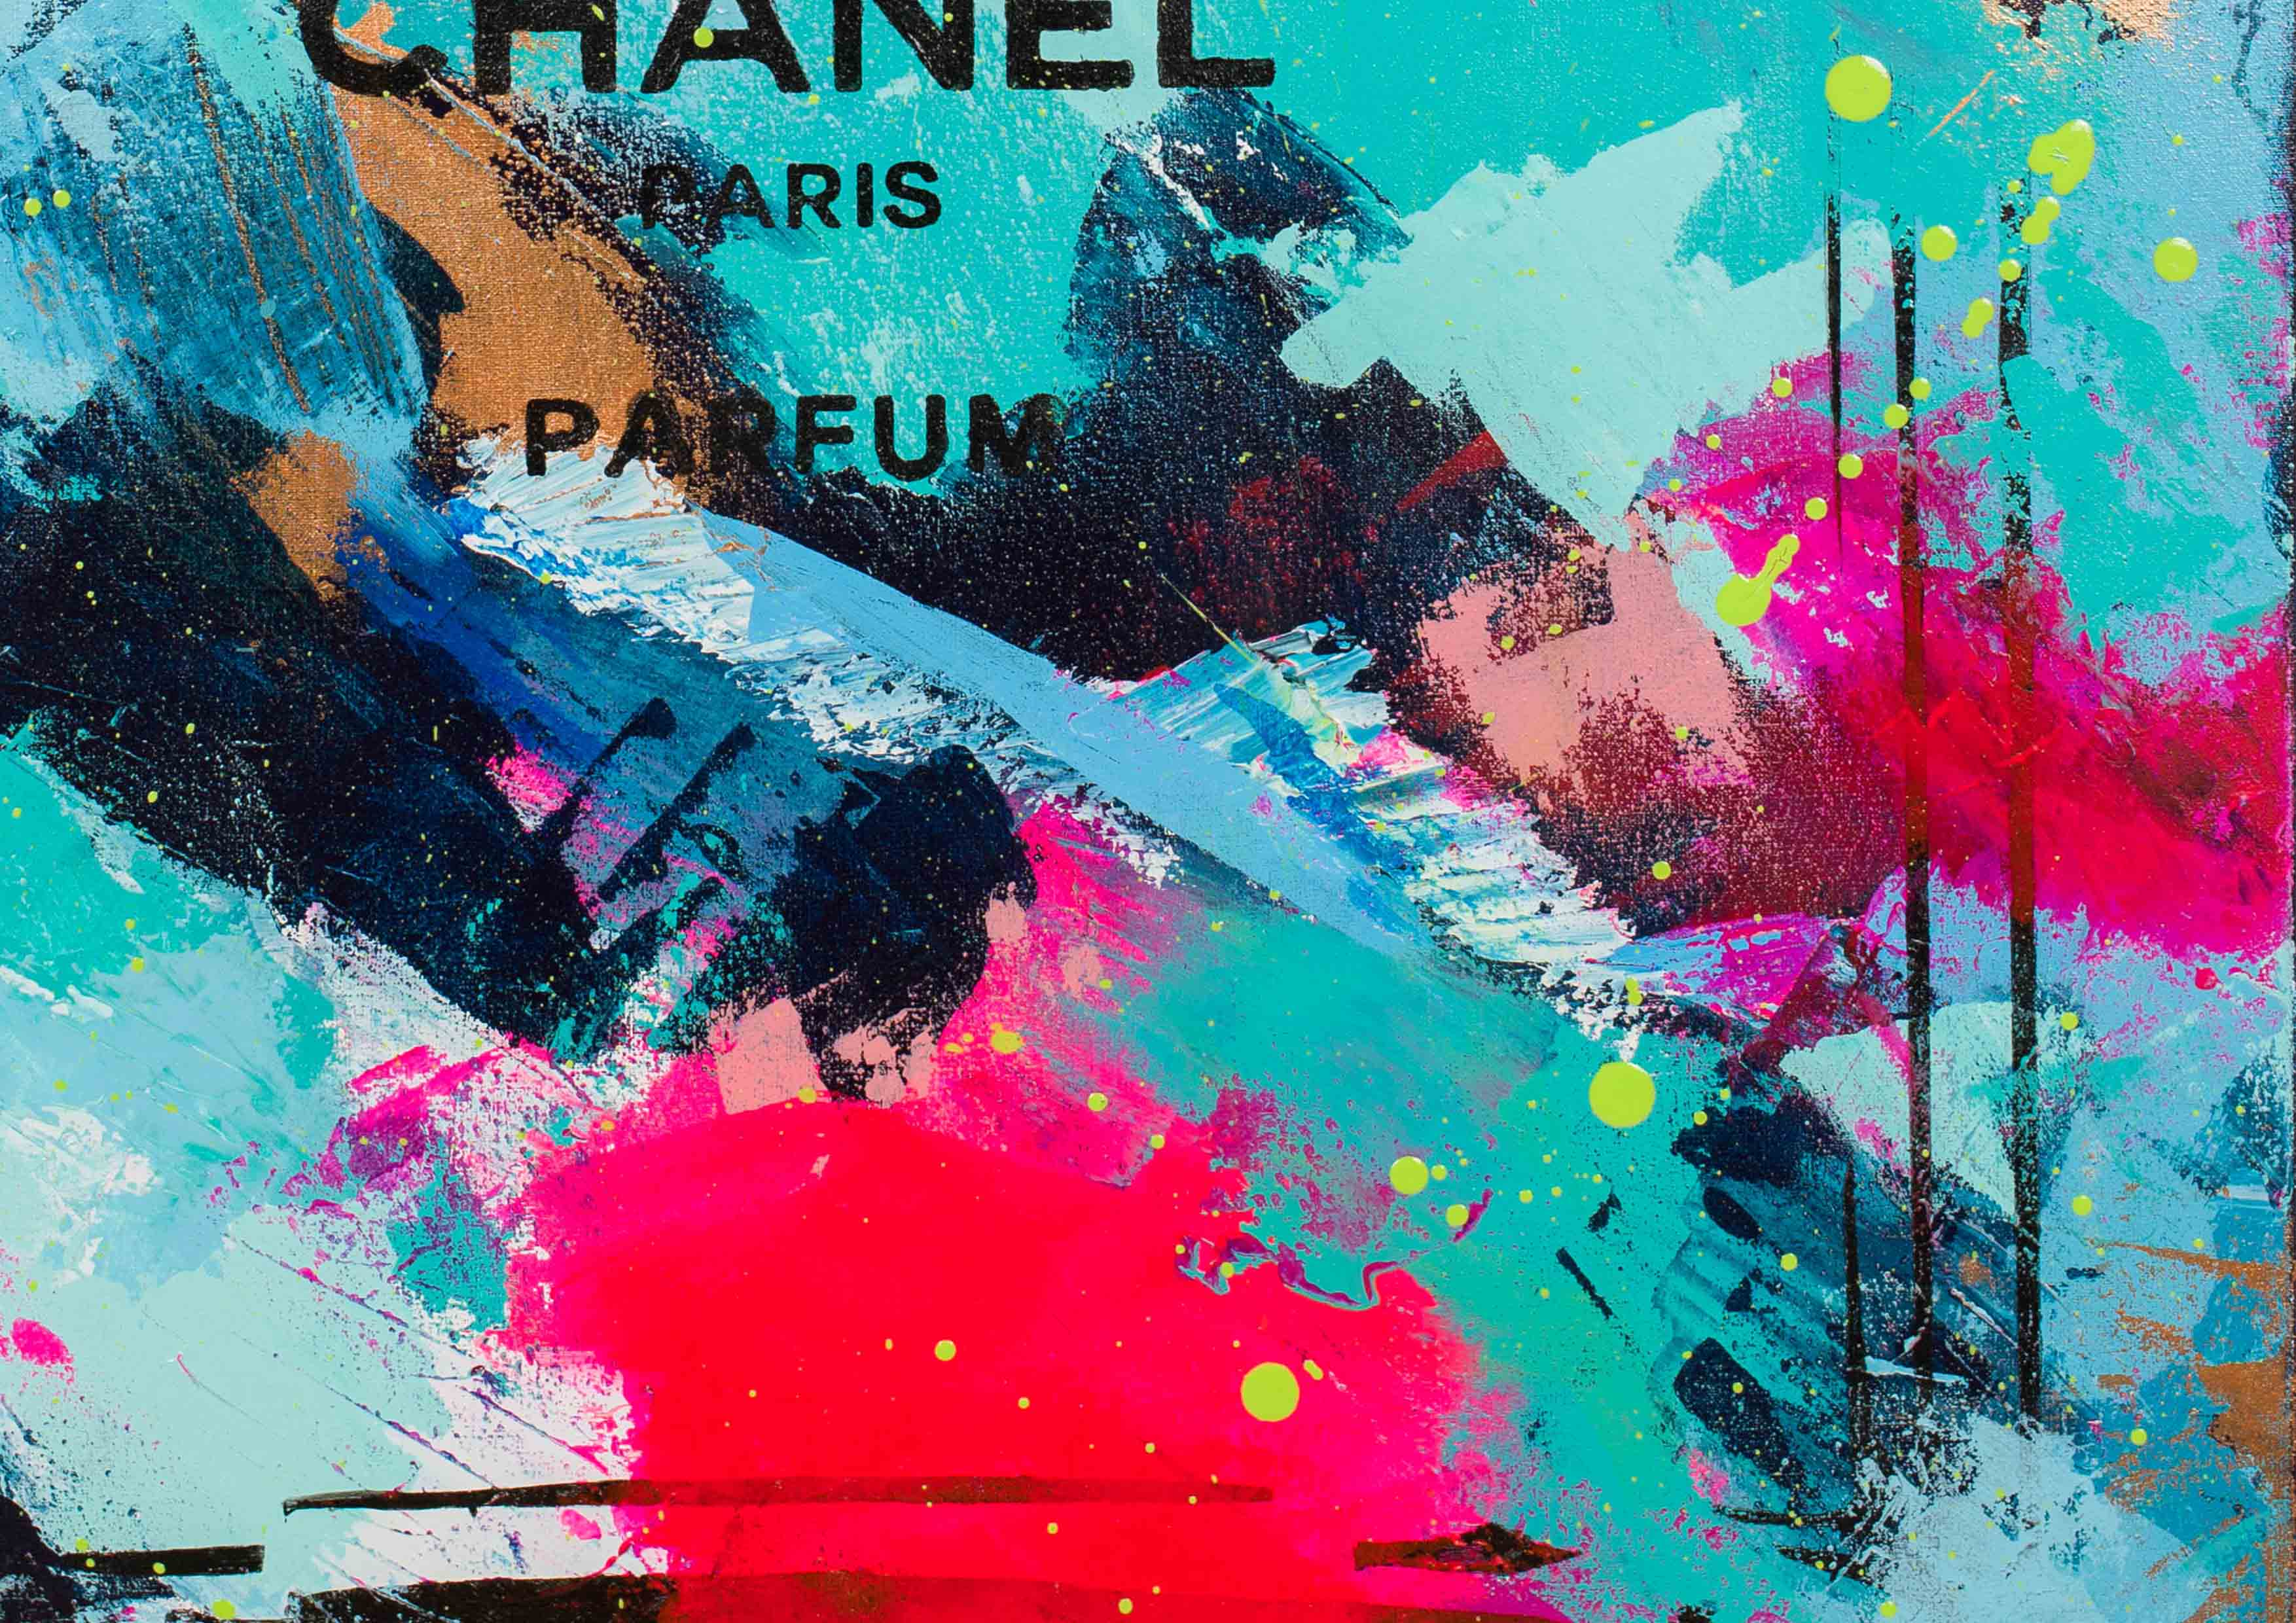 ART-PAINT-CHANEL-PERFUME-OBSESSION-CANVAS-DETAIL-2